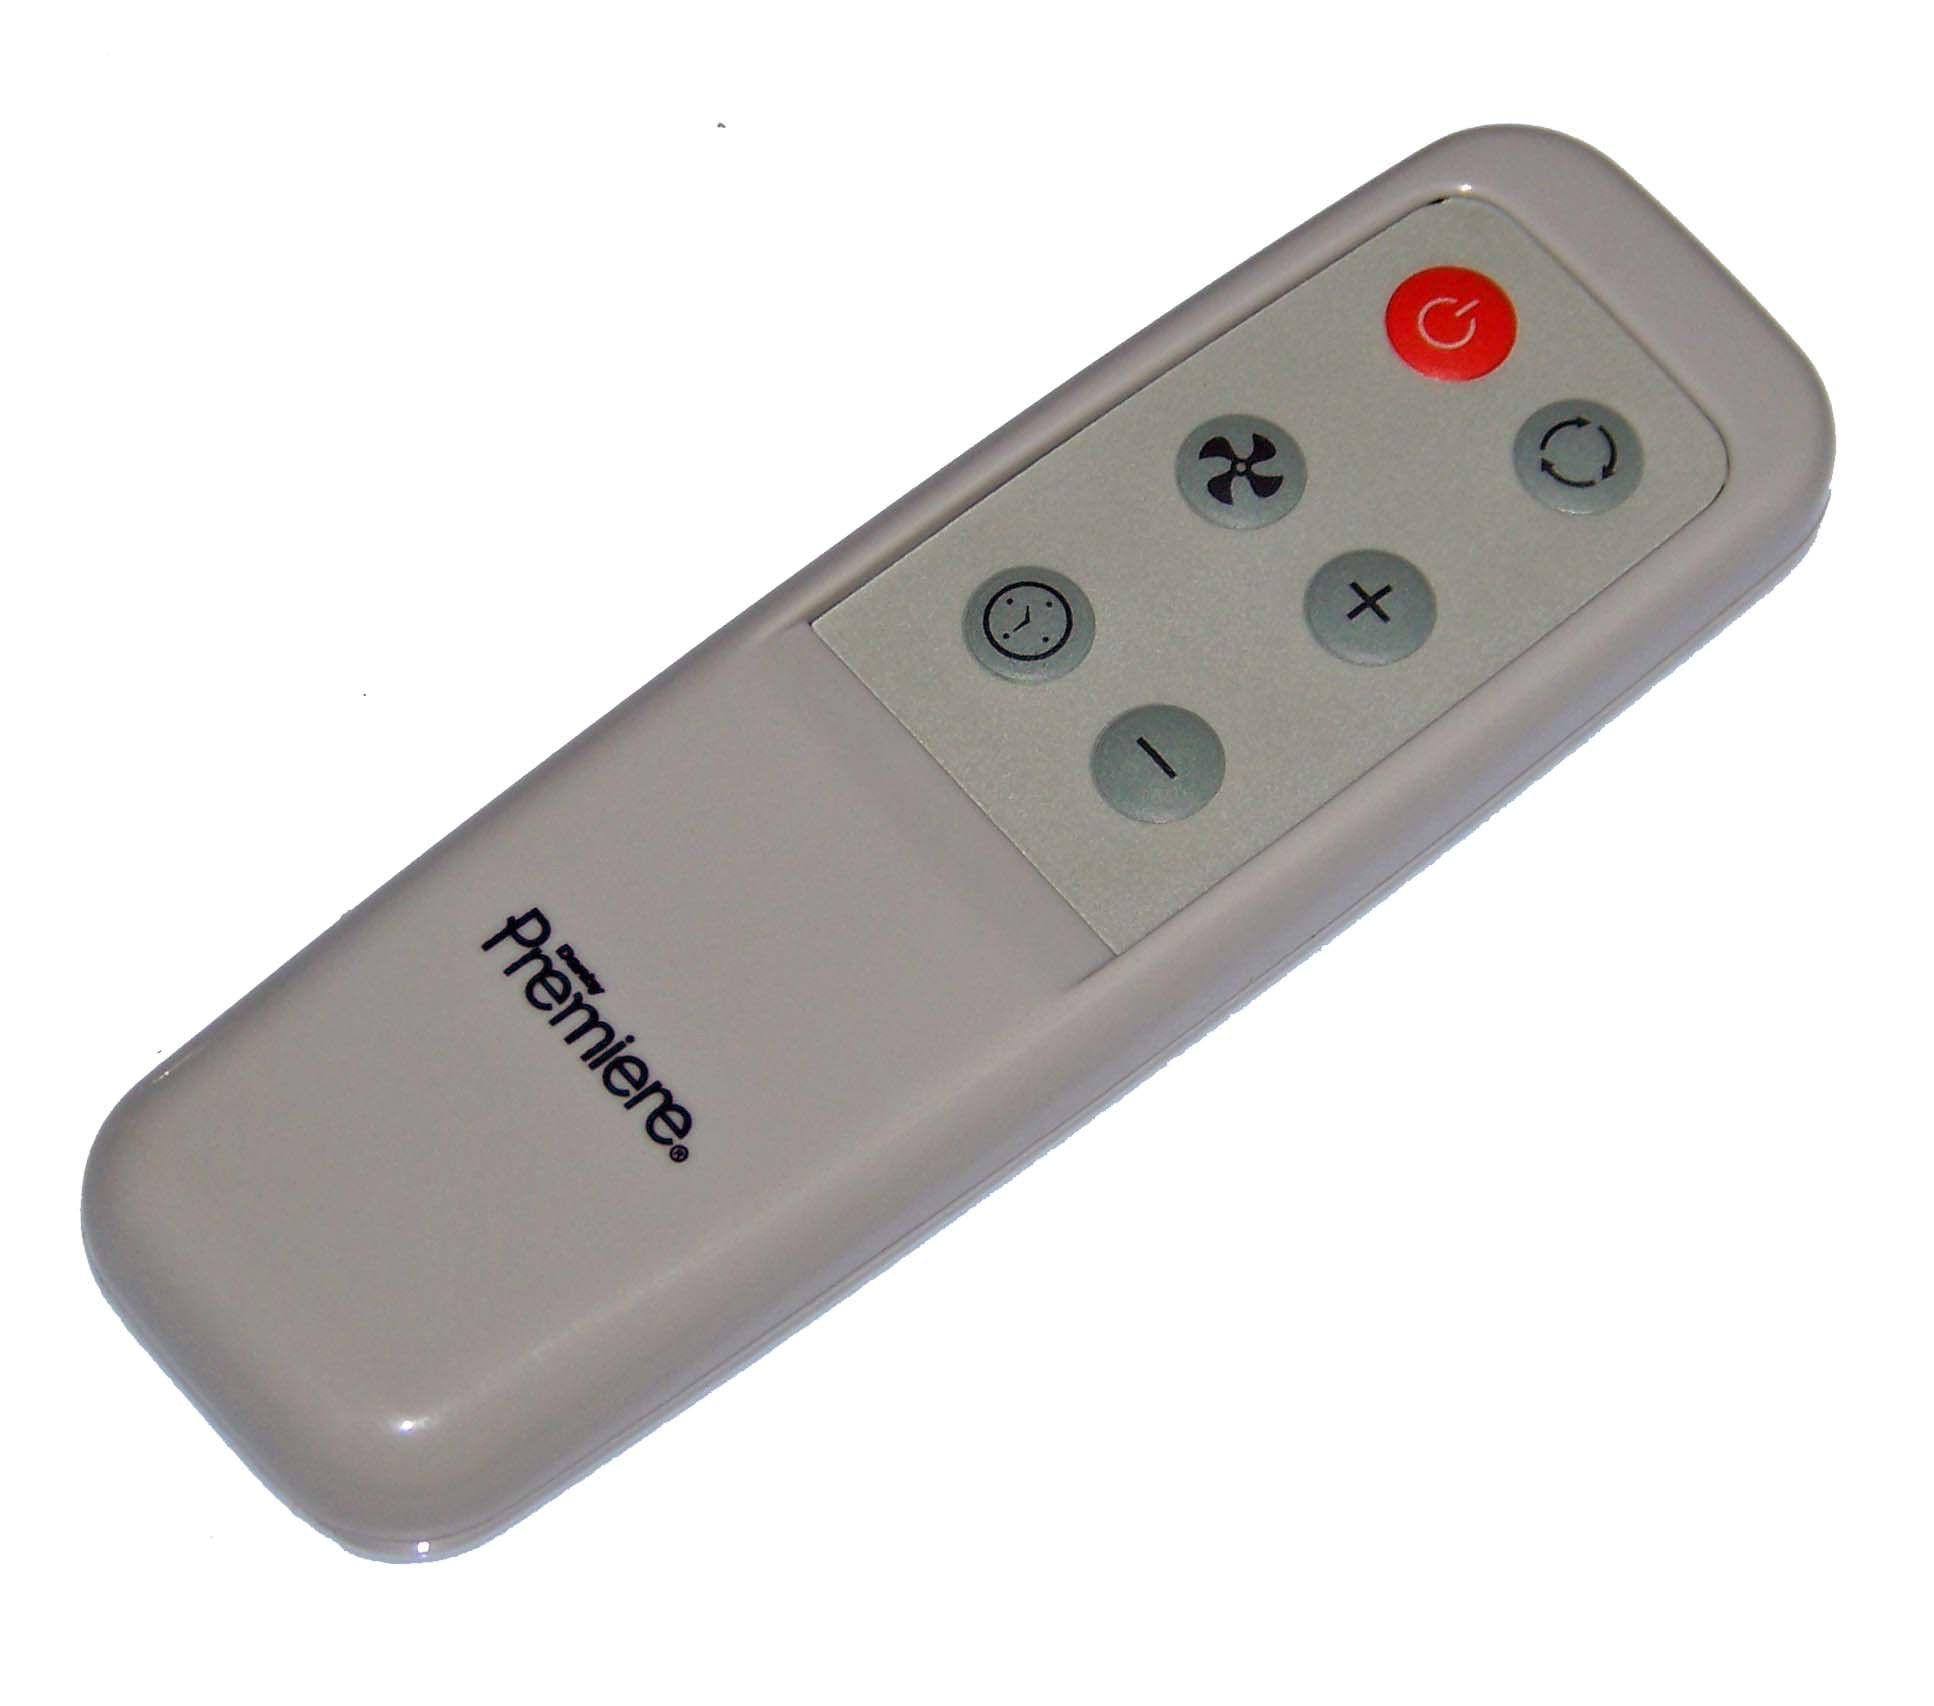 OEM Danby Remote Control Originally Shipped with: DPAC12099